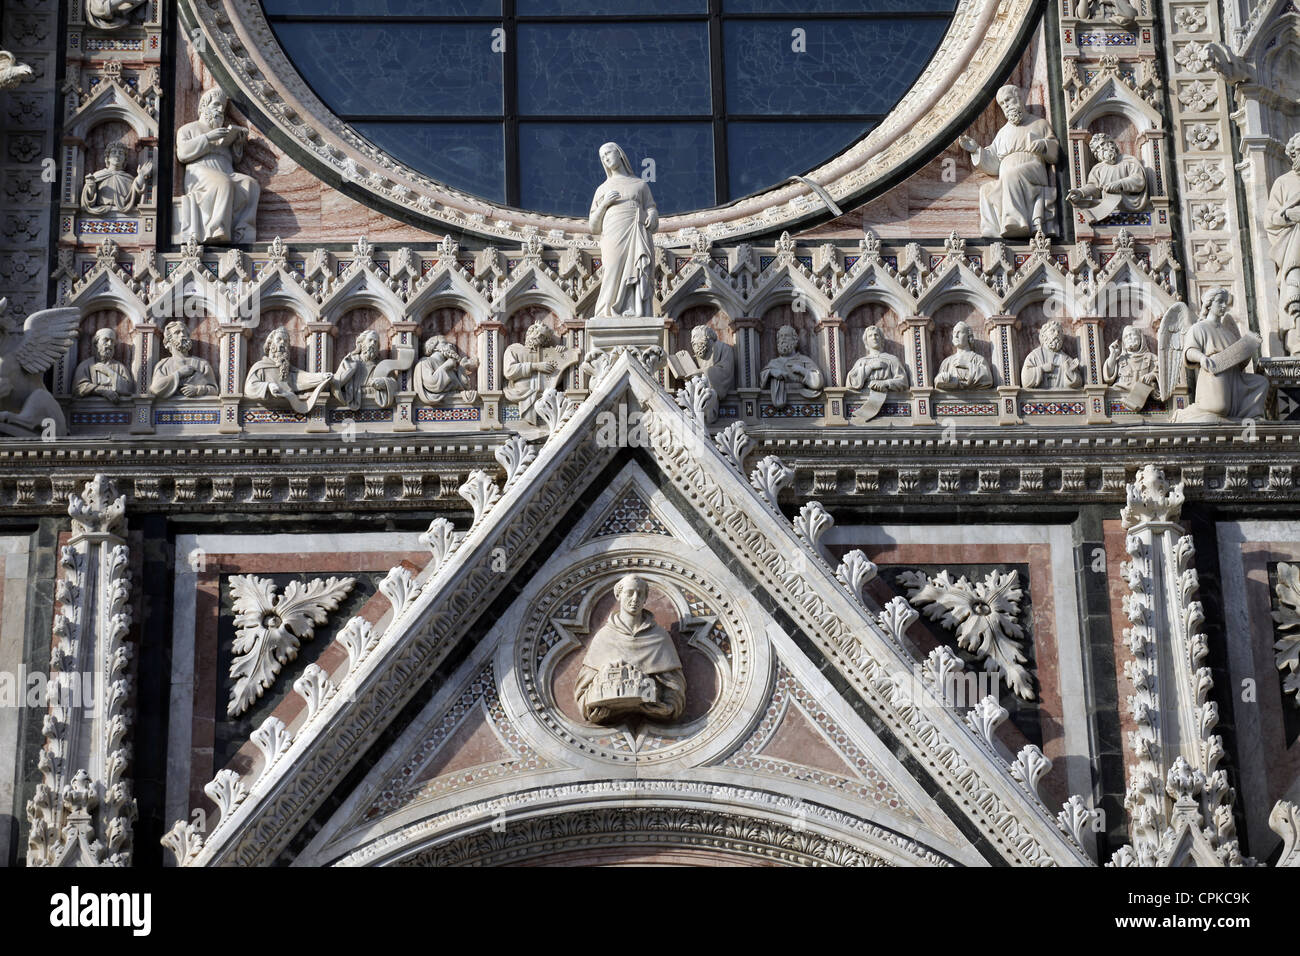 CARVINGS ON CATHEDRAL OF SIENA FACADE SIENA TUSCANY ITALY 10 May 2012 - Stock Image